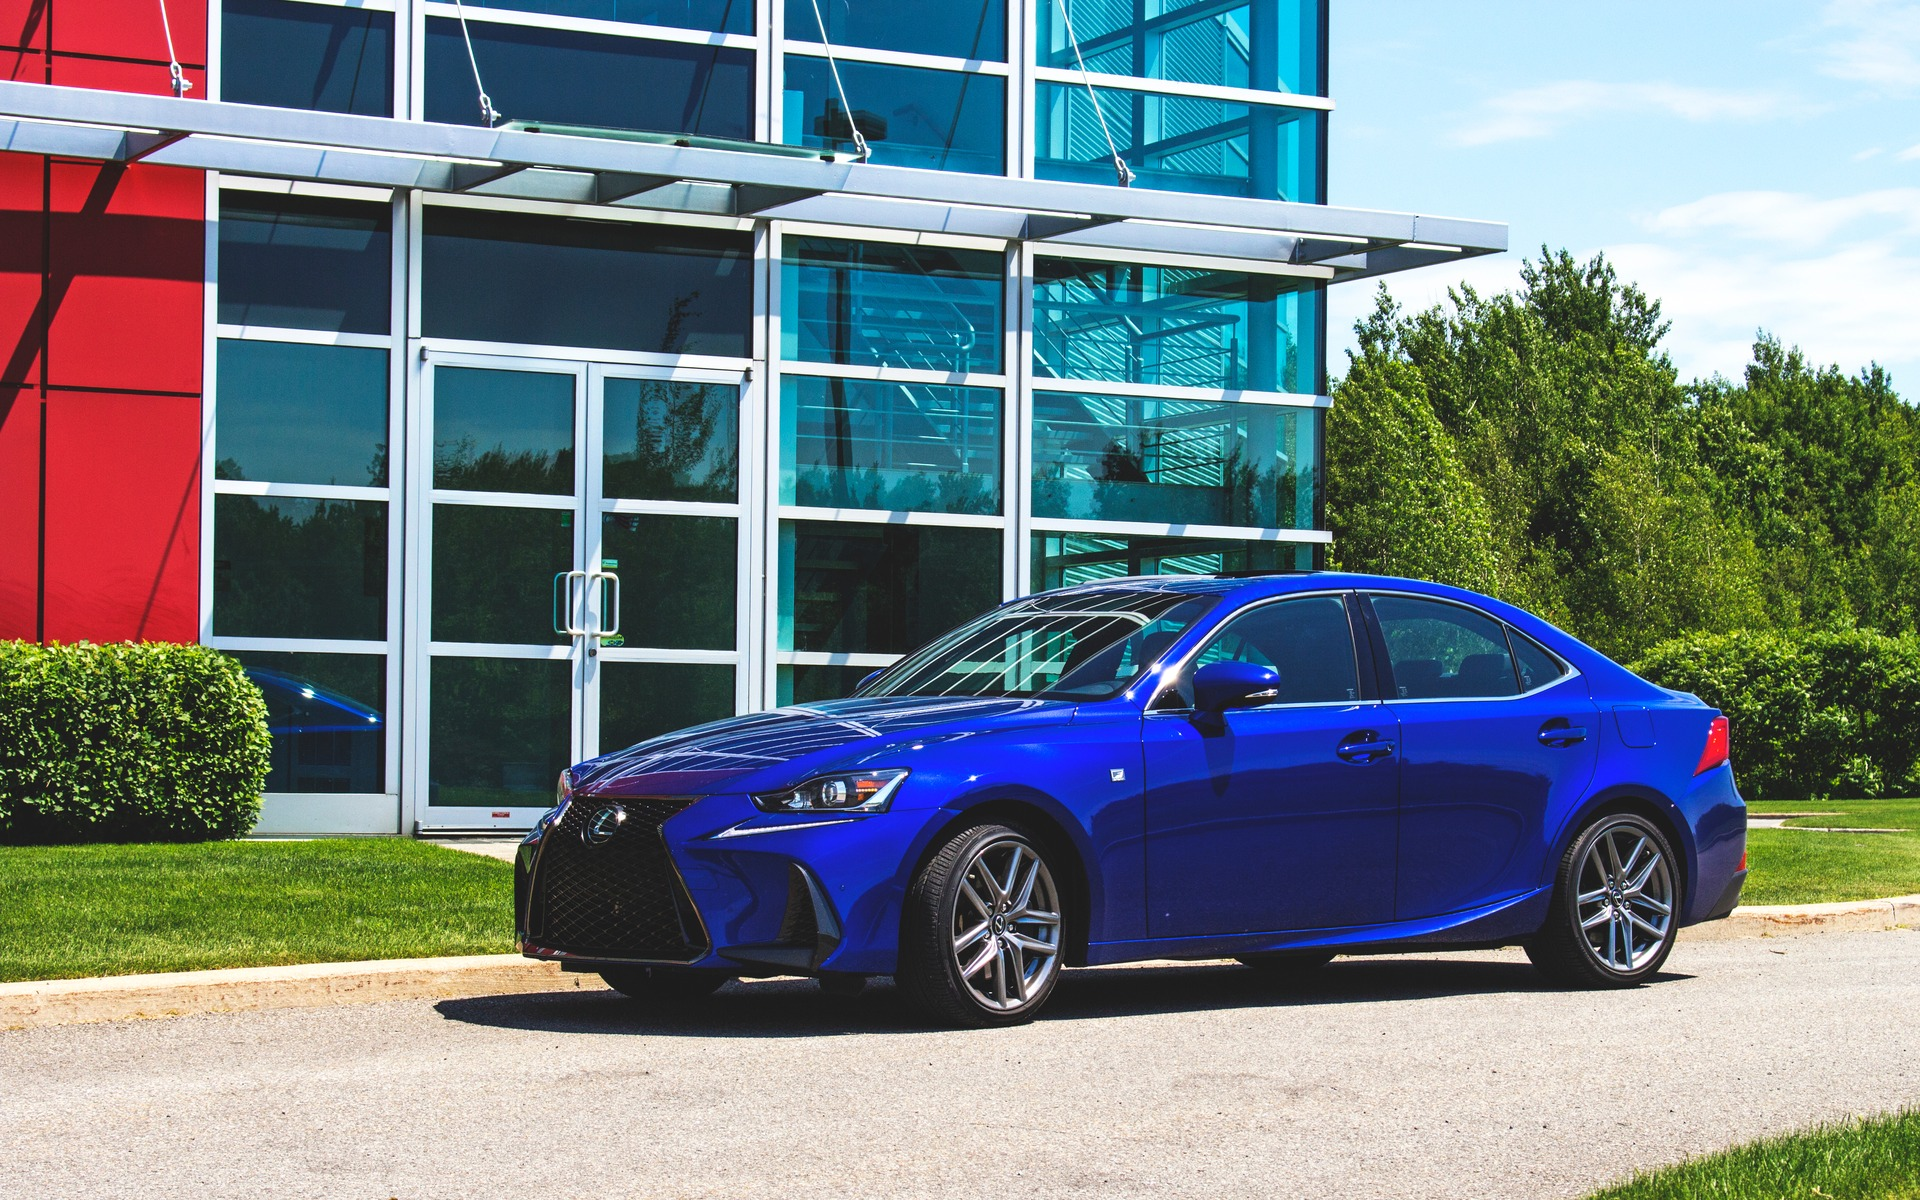 2018 Lexus Is 350 F Sport The 3 Series Bmw Used To Build 9 17